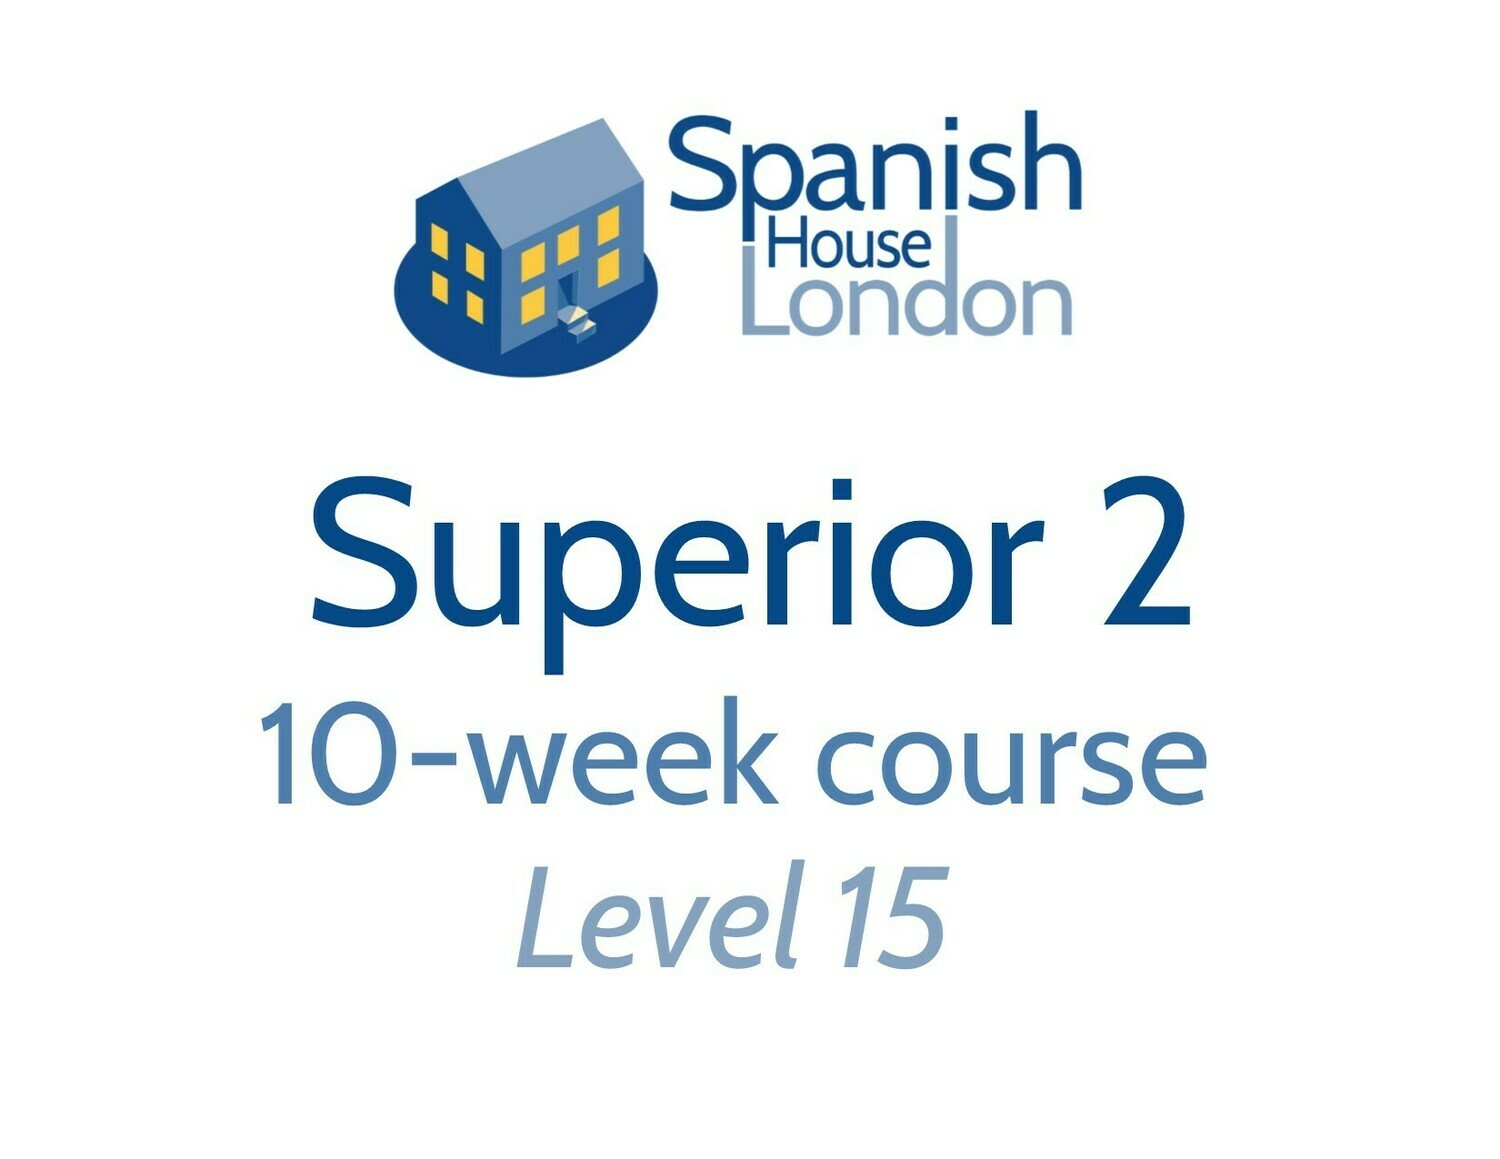 Superior 2 Course starting on 14th January at 7.30pm in Clapham North